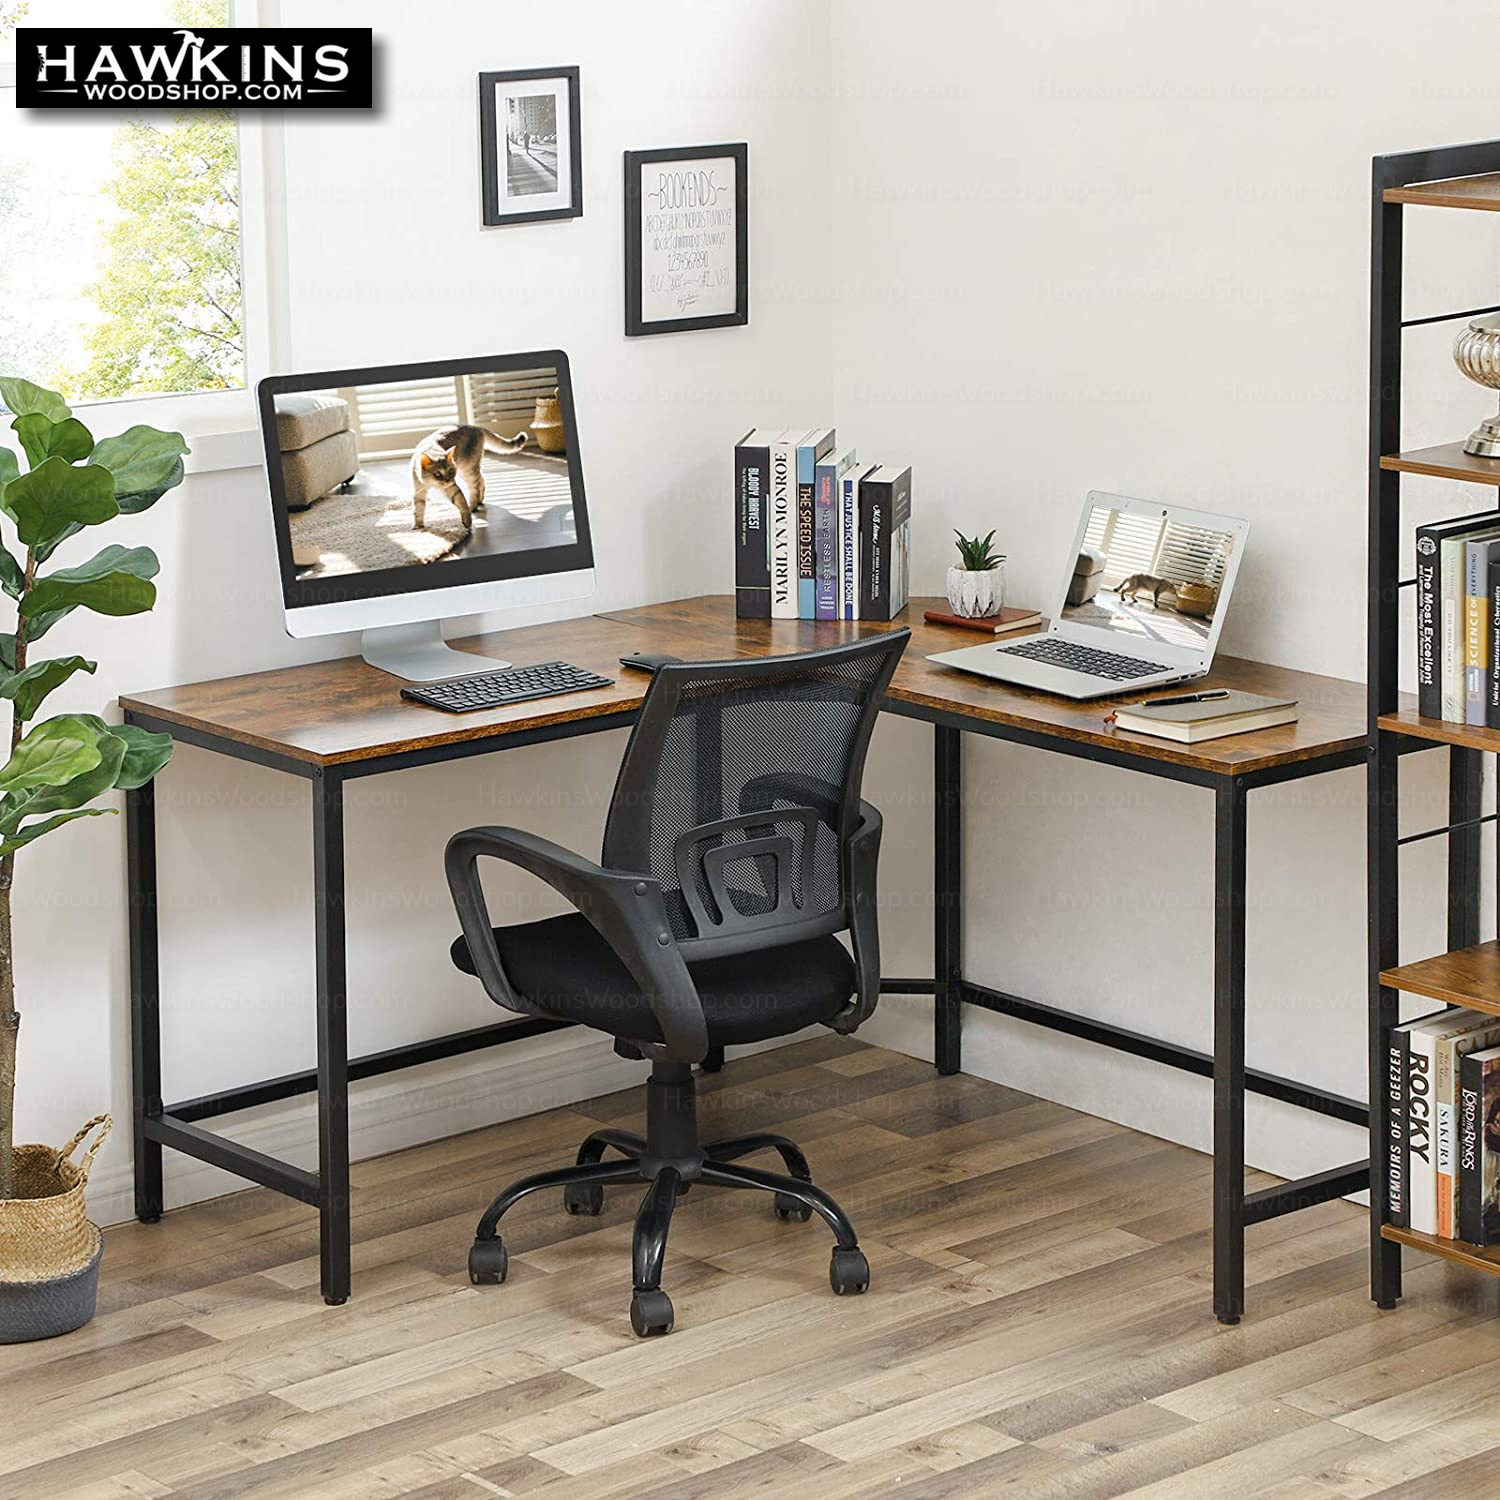 Enjoy fast, free nationwide shipping!  Family owned and operated, HawkinsWoodshop.com is your one stop shop for affordable furniture.  Shop HawkinsWoodshop.com for solid wood & metal modern, traditional, contemporary, industrial, custom, rustic, and farmhouse furniture including our Ryan II L-Shaped Desk w/Metal Base & Wood Top.